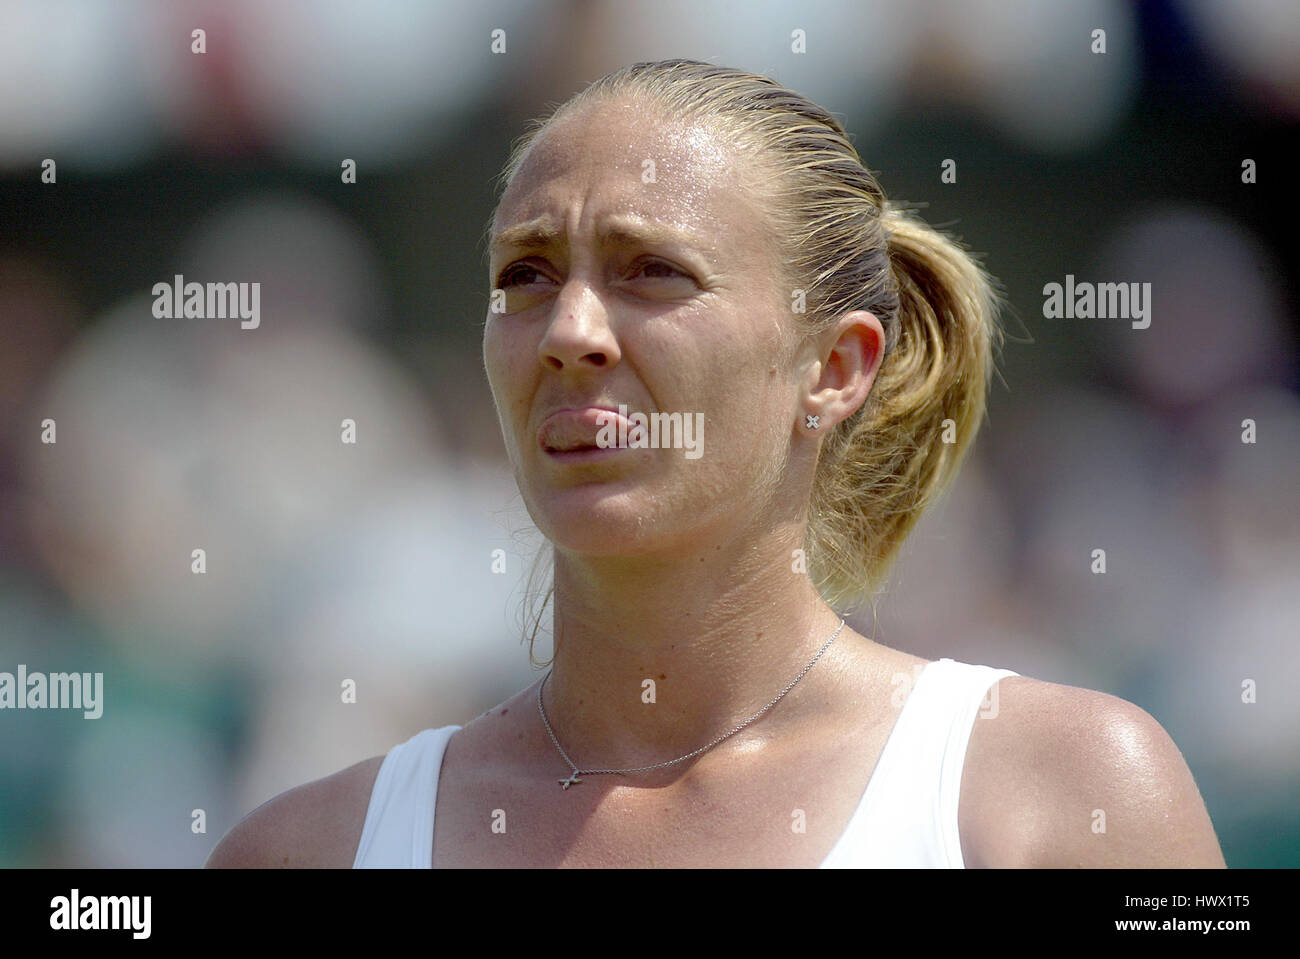 MARY PIERCE FRANCE WIMBLEDON LONDON ENGLAND 26 June 2003 Stock